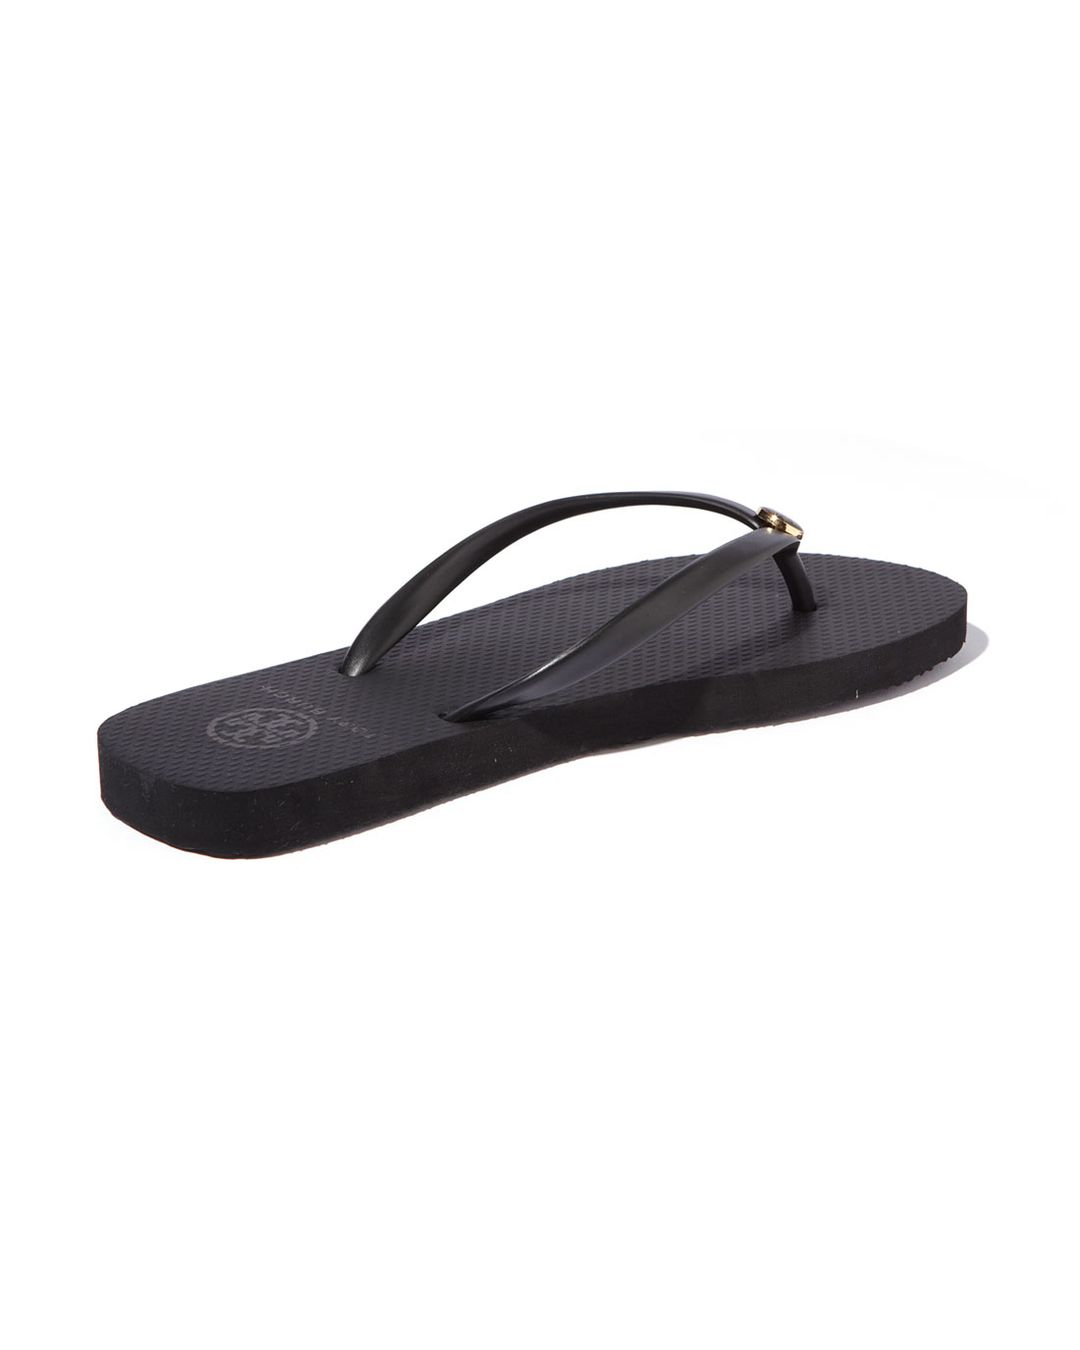 e29e51d87dfa Where to Buy. Tory Burch US. Tory Burch Thin Flip Flops